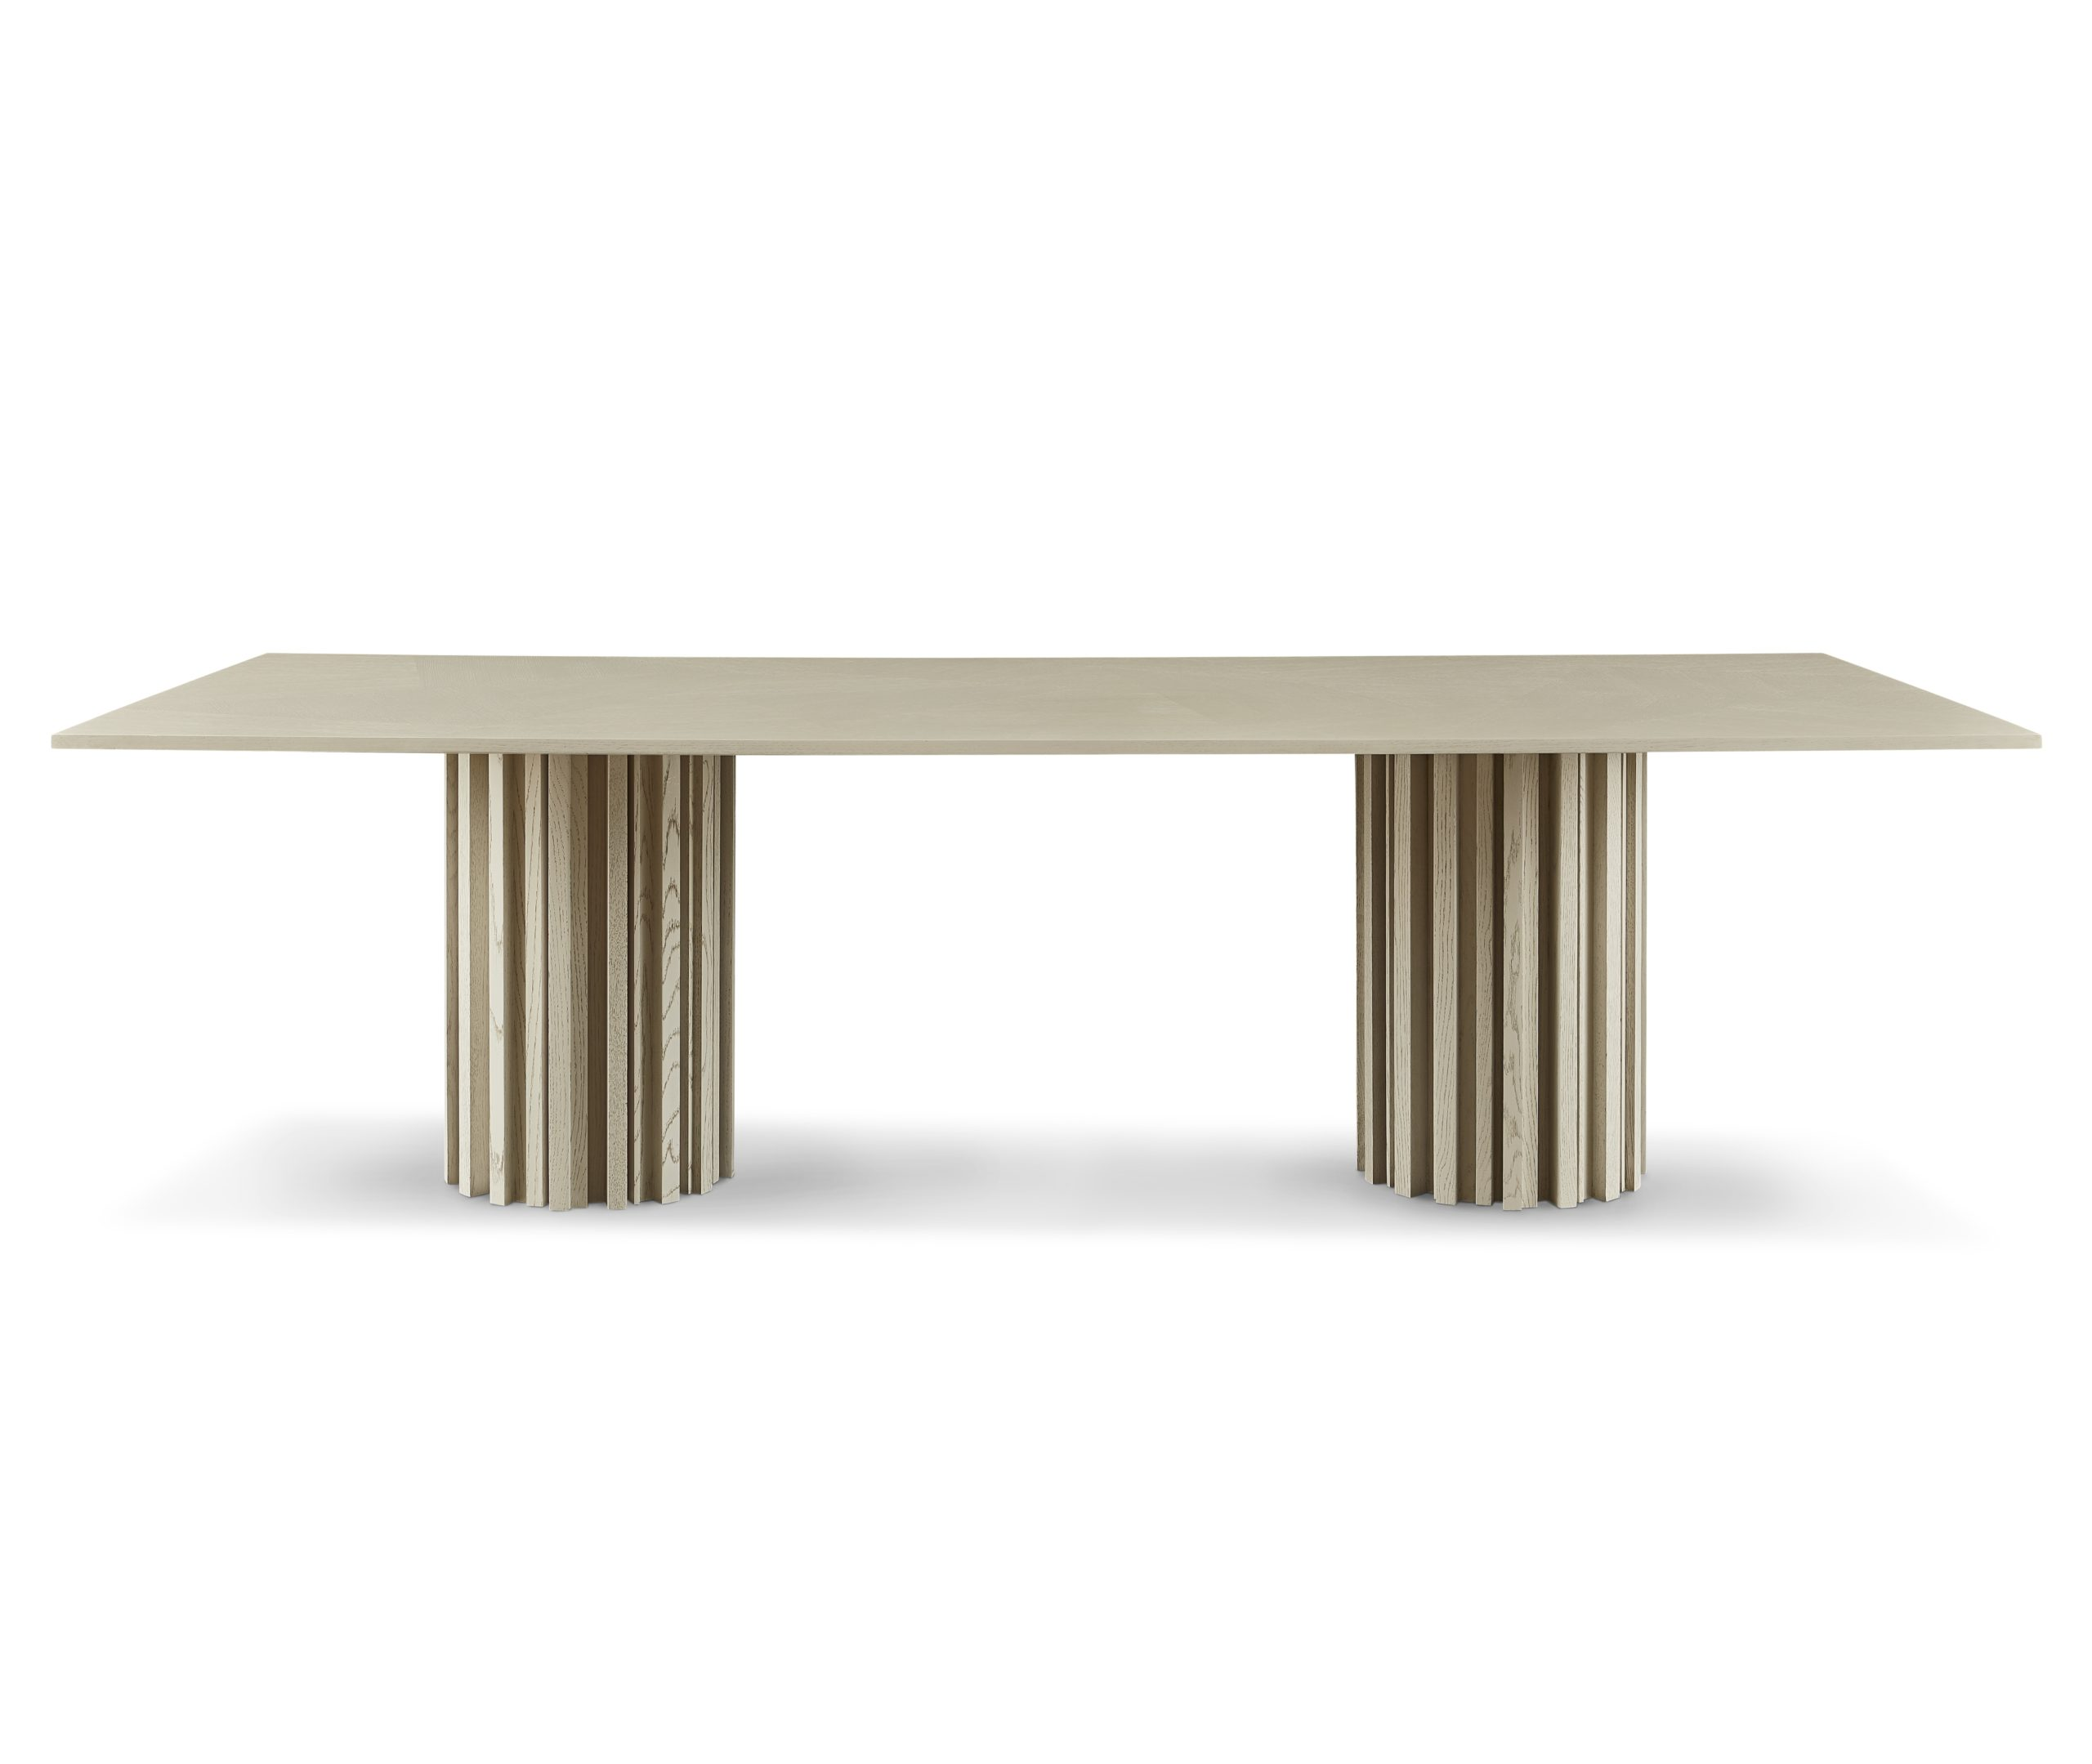 Baker_products_WNWN_huxley_dining_table_BAA3036_RECT_FRONT-scaled-6